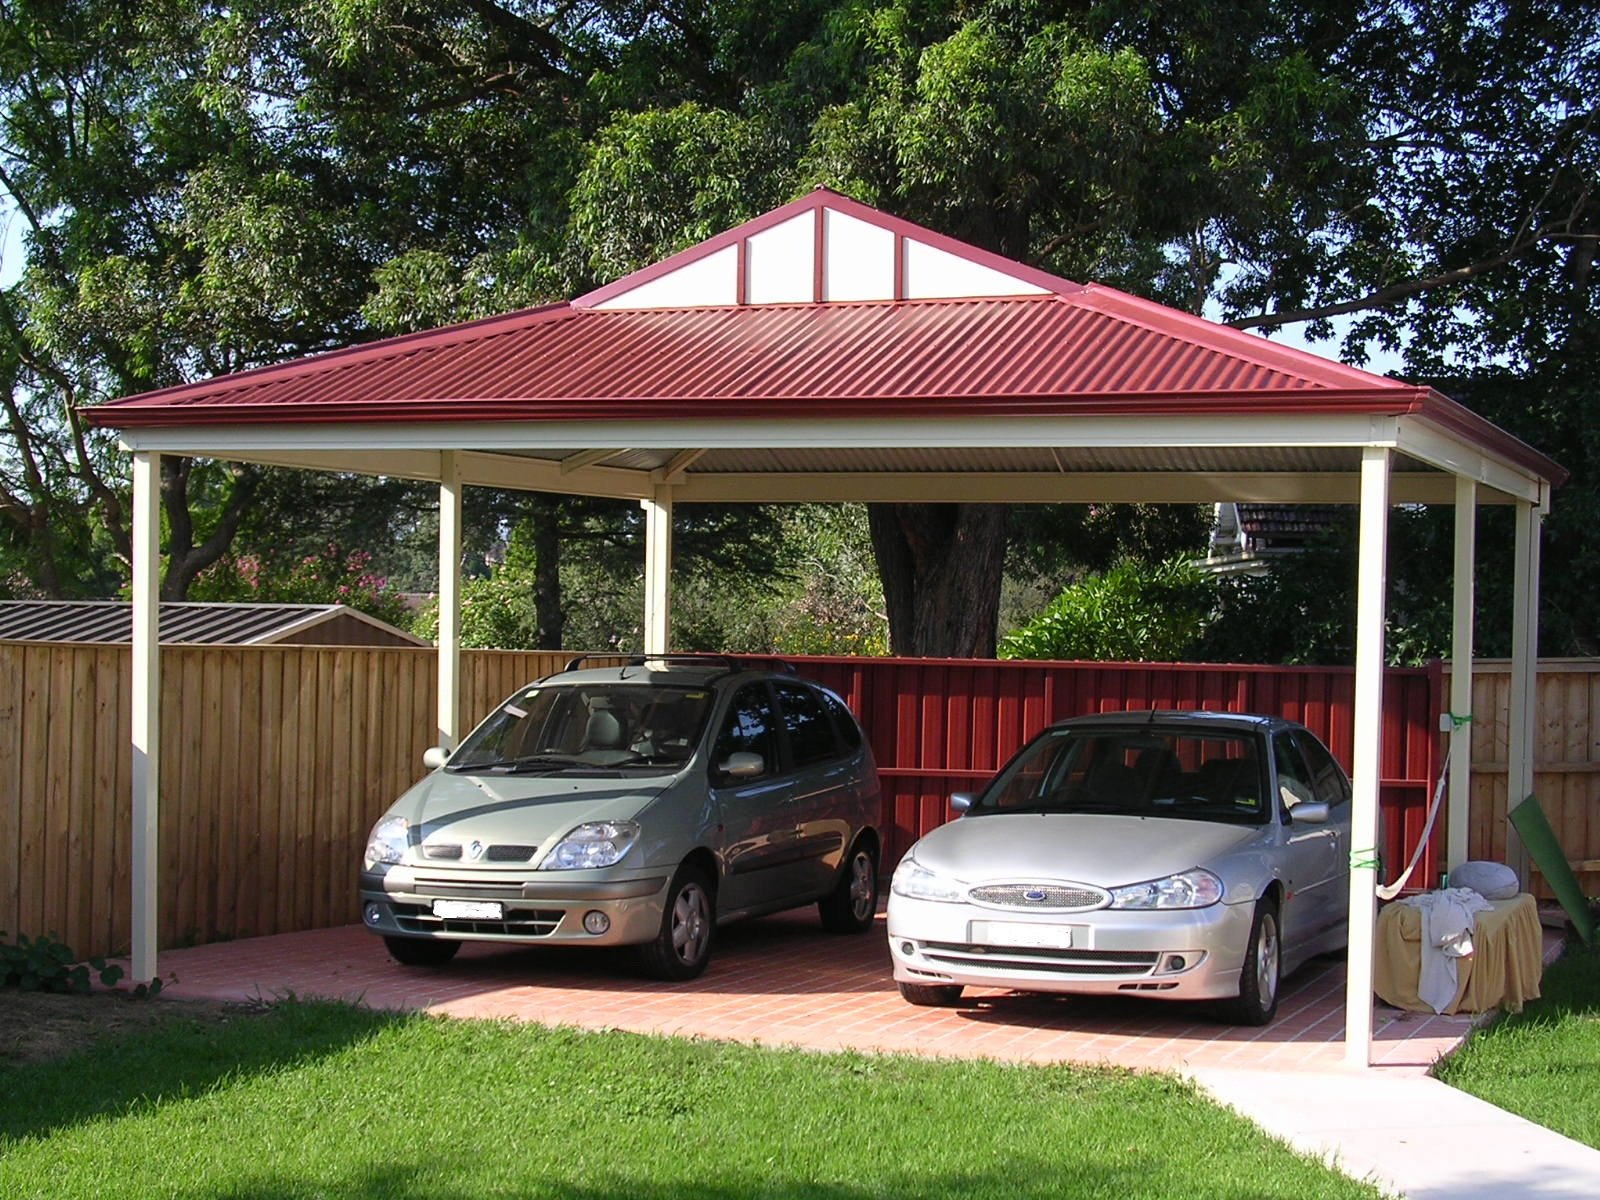 Double carport brisbane outside concepts for Gable roof carport